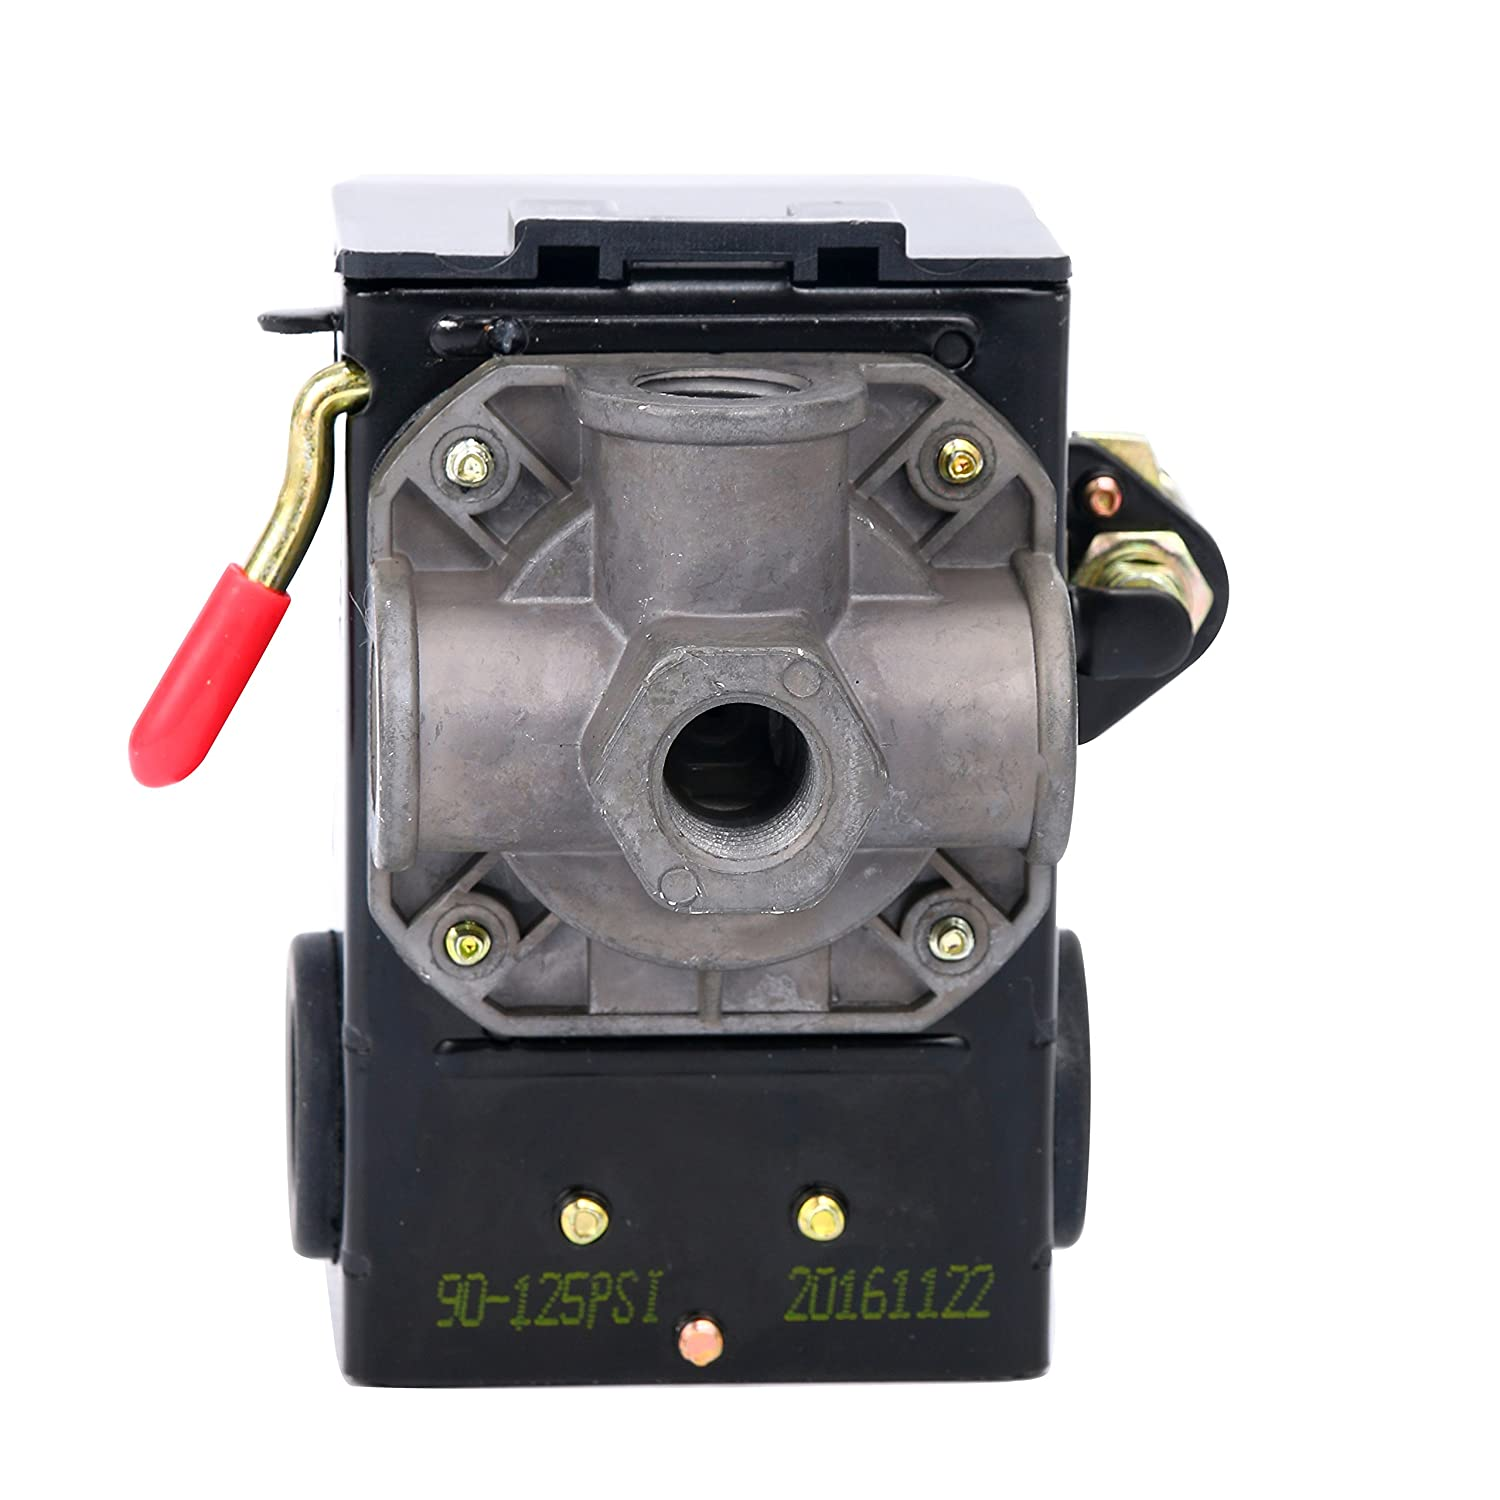 Lefoo Pressure Switch Control 90-125psi 4 Port Heavy Duty 26 Amp for on